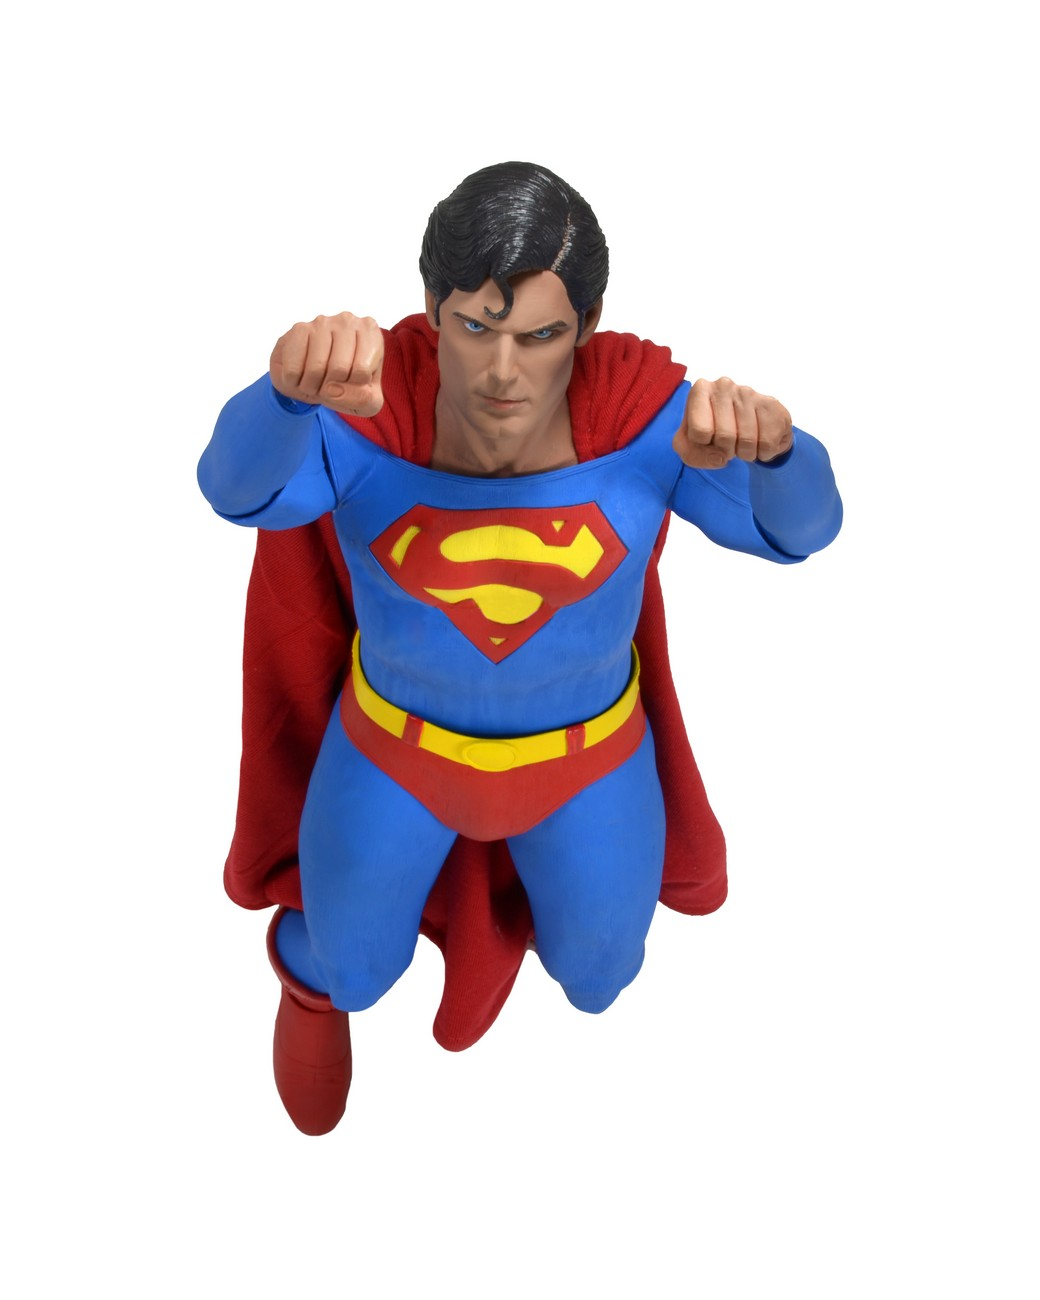 Superman Home Decor Shipping This Week Christopher Reeve Superman 1 4 Scale